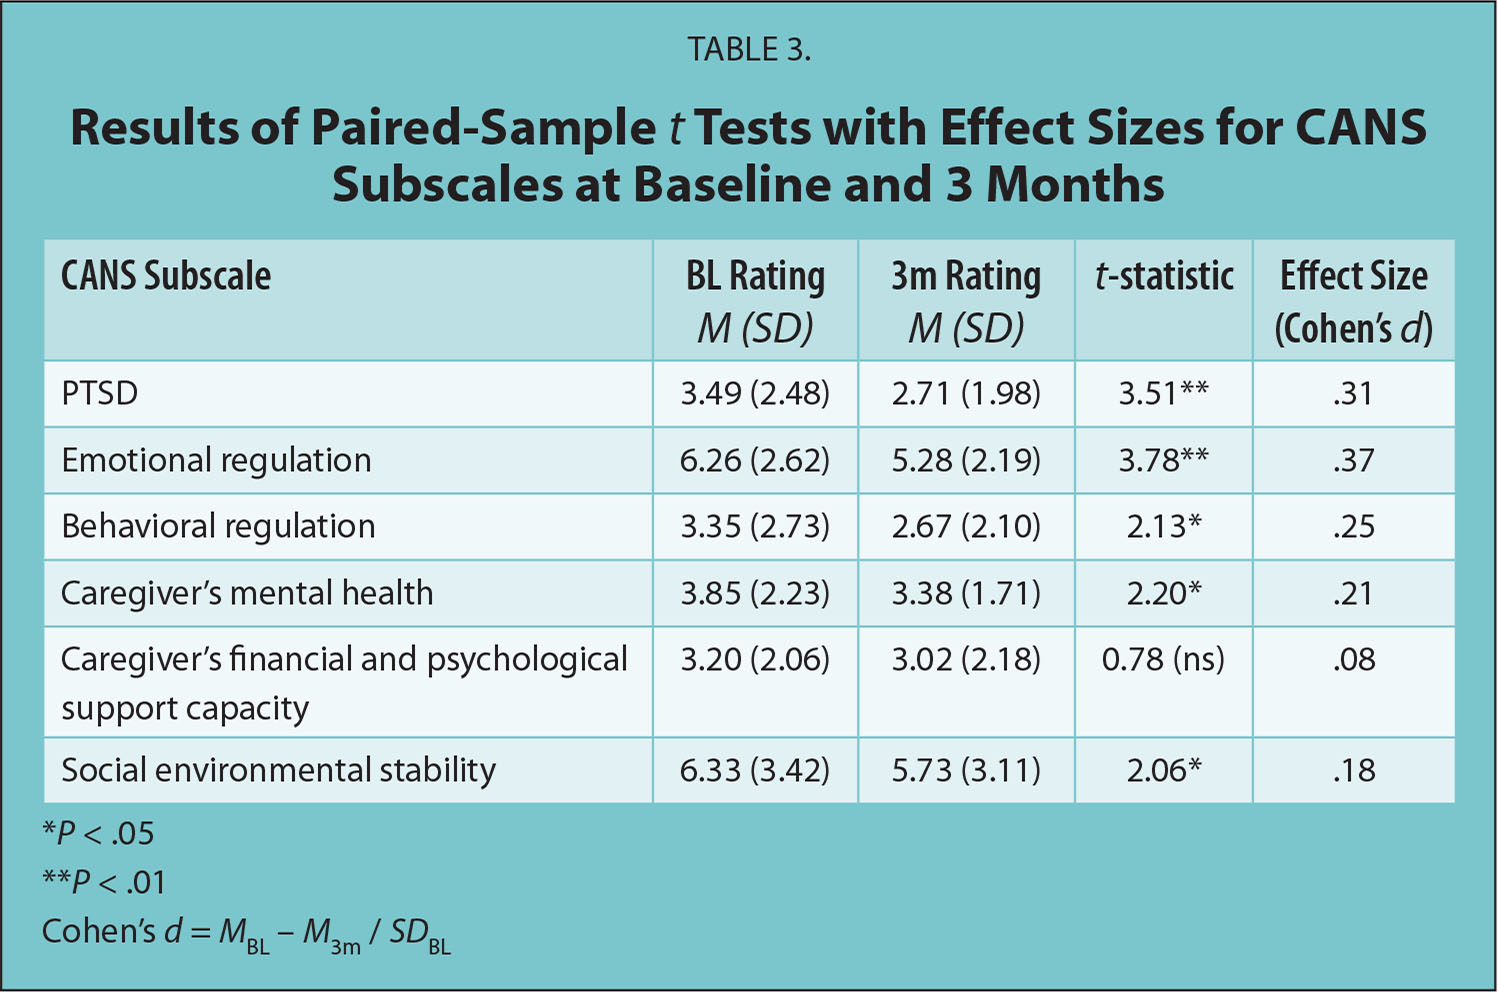 Results of Paired-Sample t Tests with Effect Sizes for CANS Subscales at Baseline and 3 Months